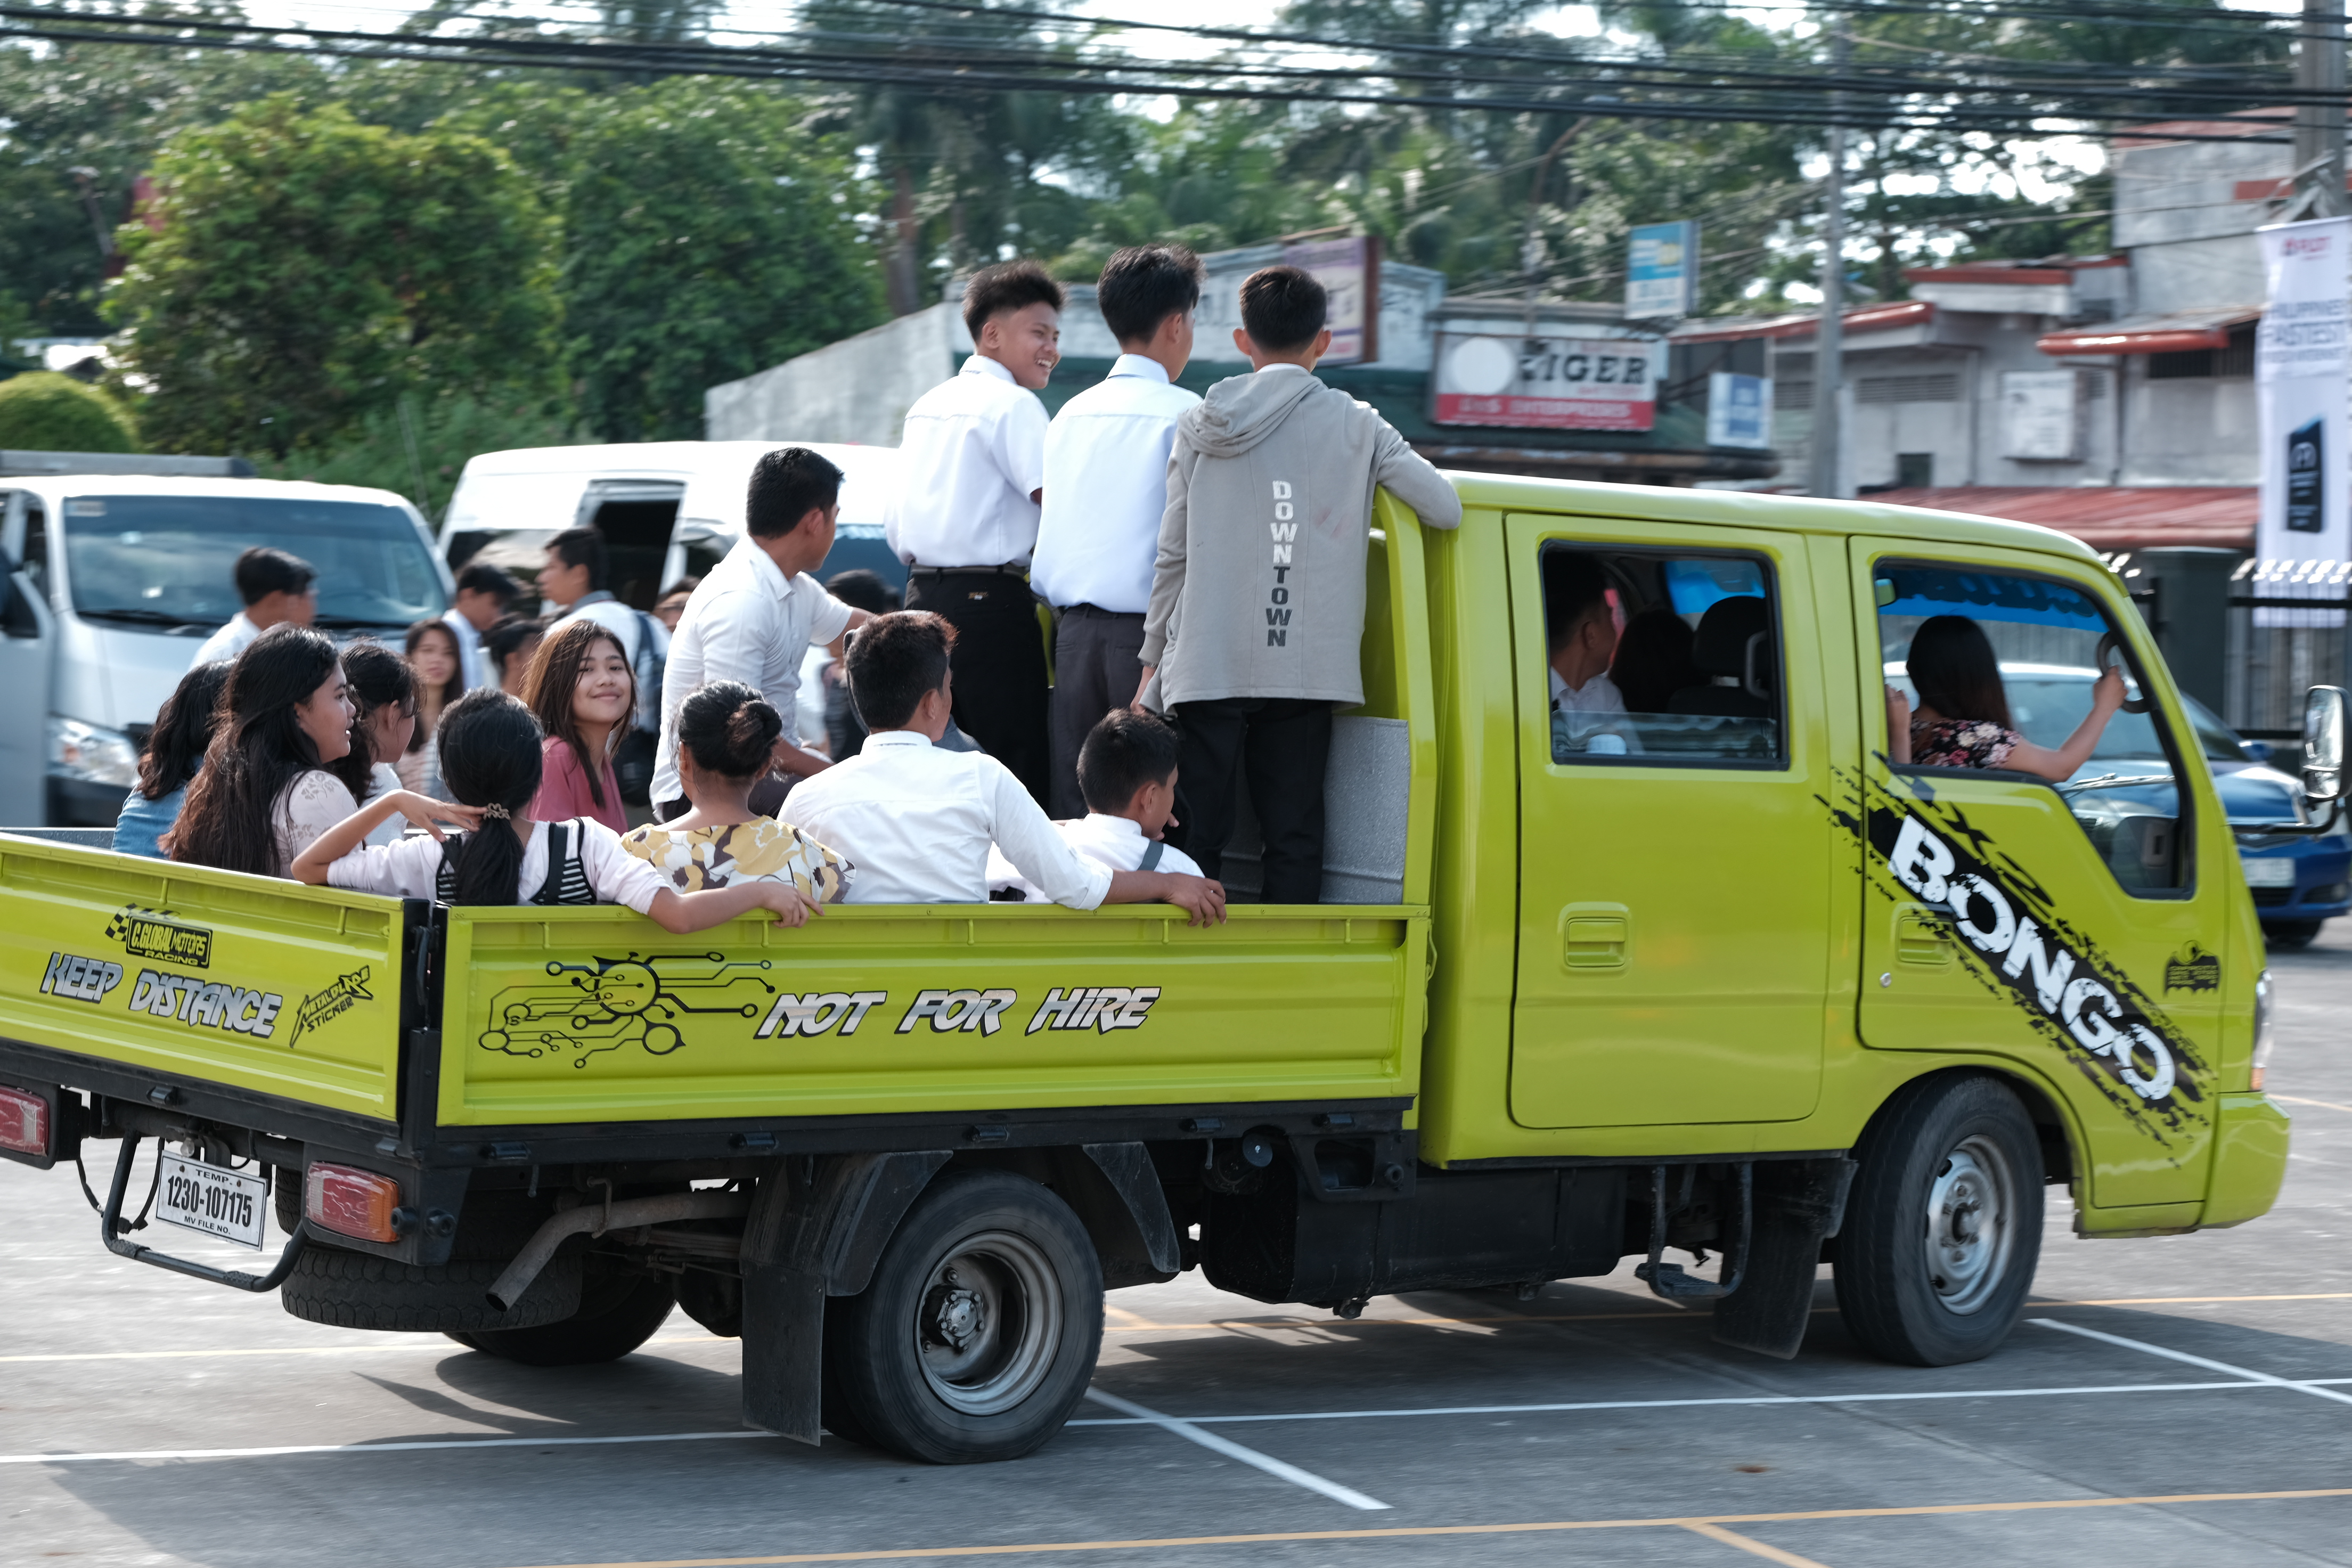 Members of the Church in Bacolod pile into a truck to attend a devotional with Elder Dale G. Renlund during his recent visit to the island nation.